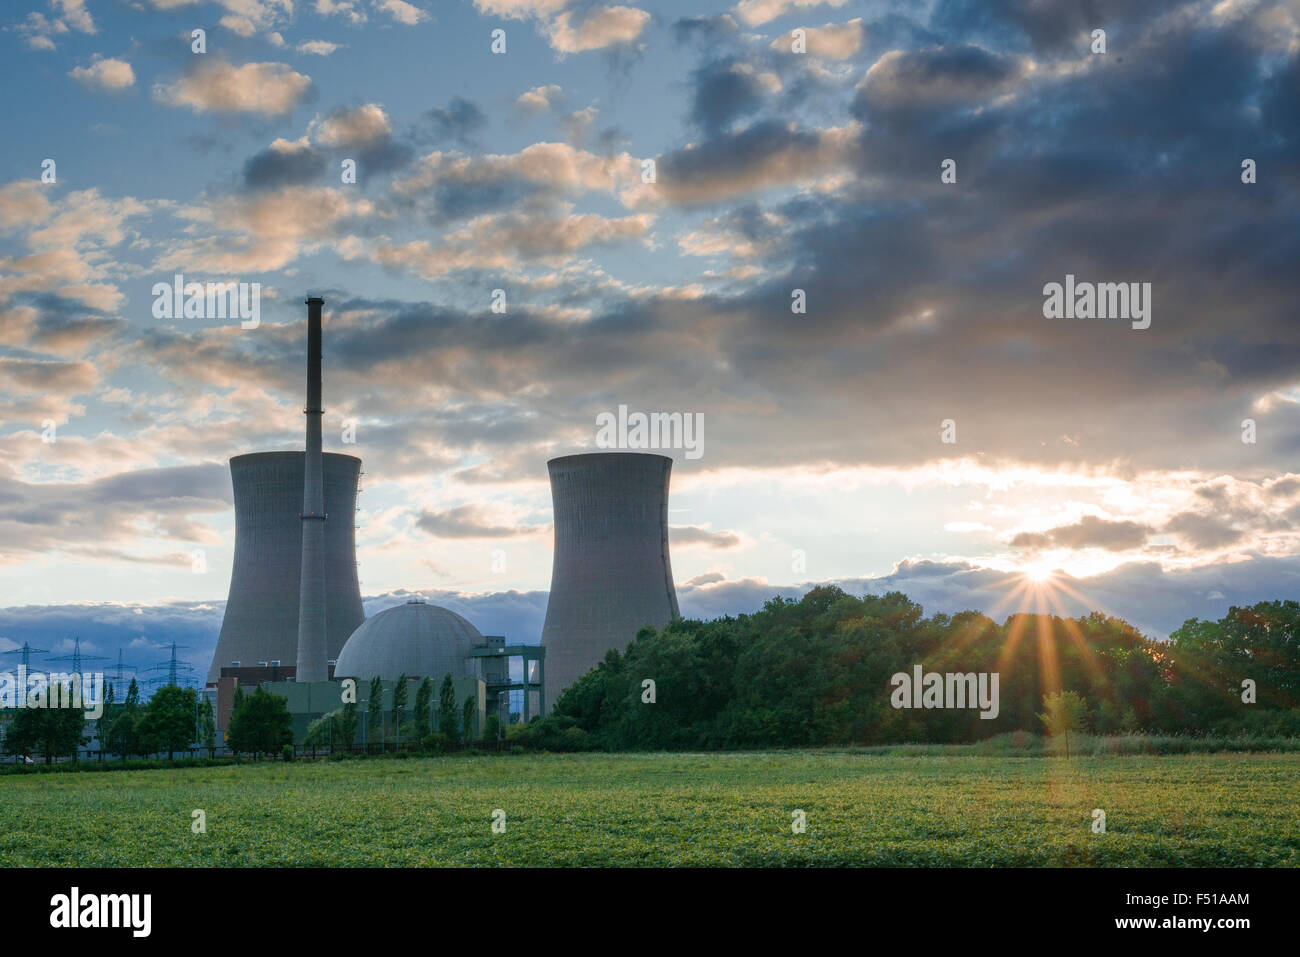 The nuclear powerplant Grafenrheinfeld, seen at sunset - Stock Image